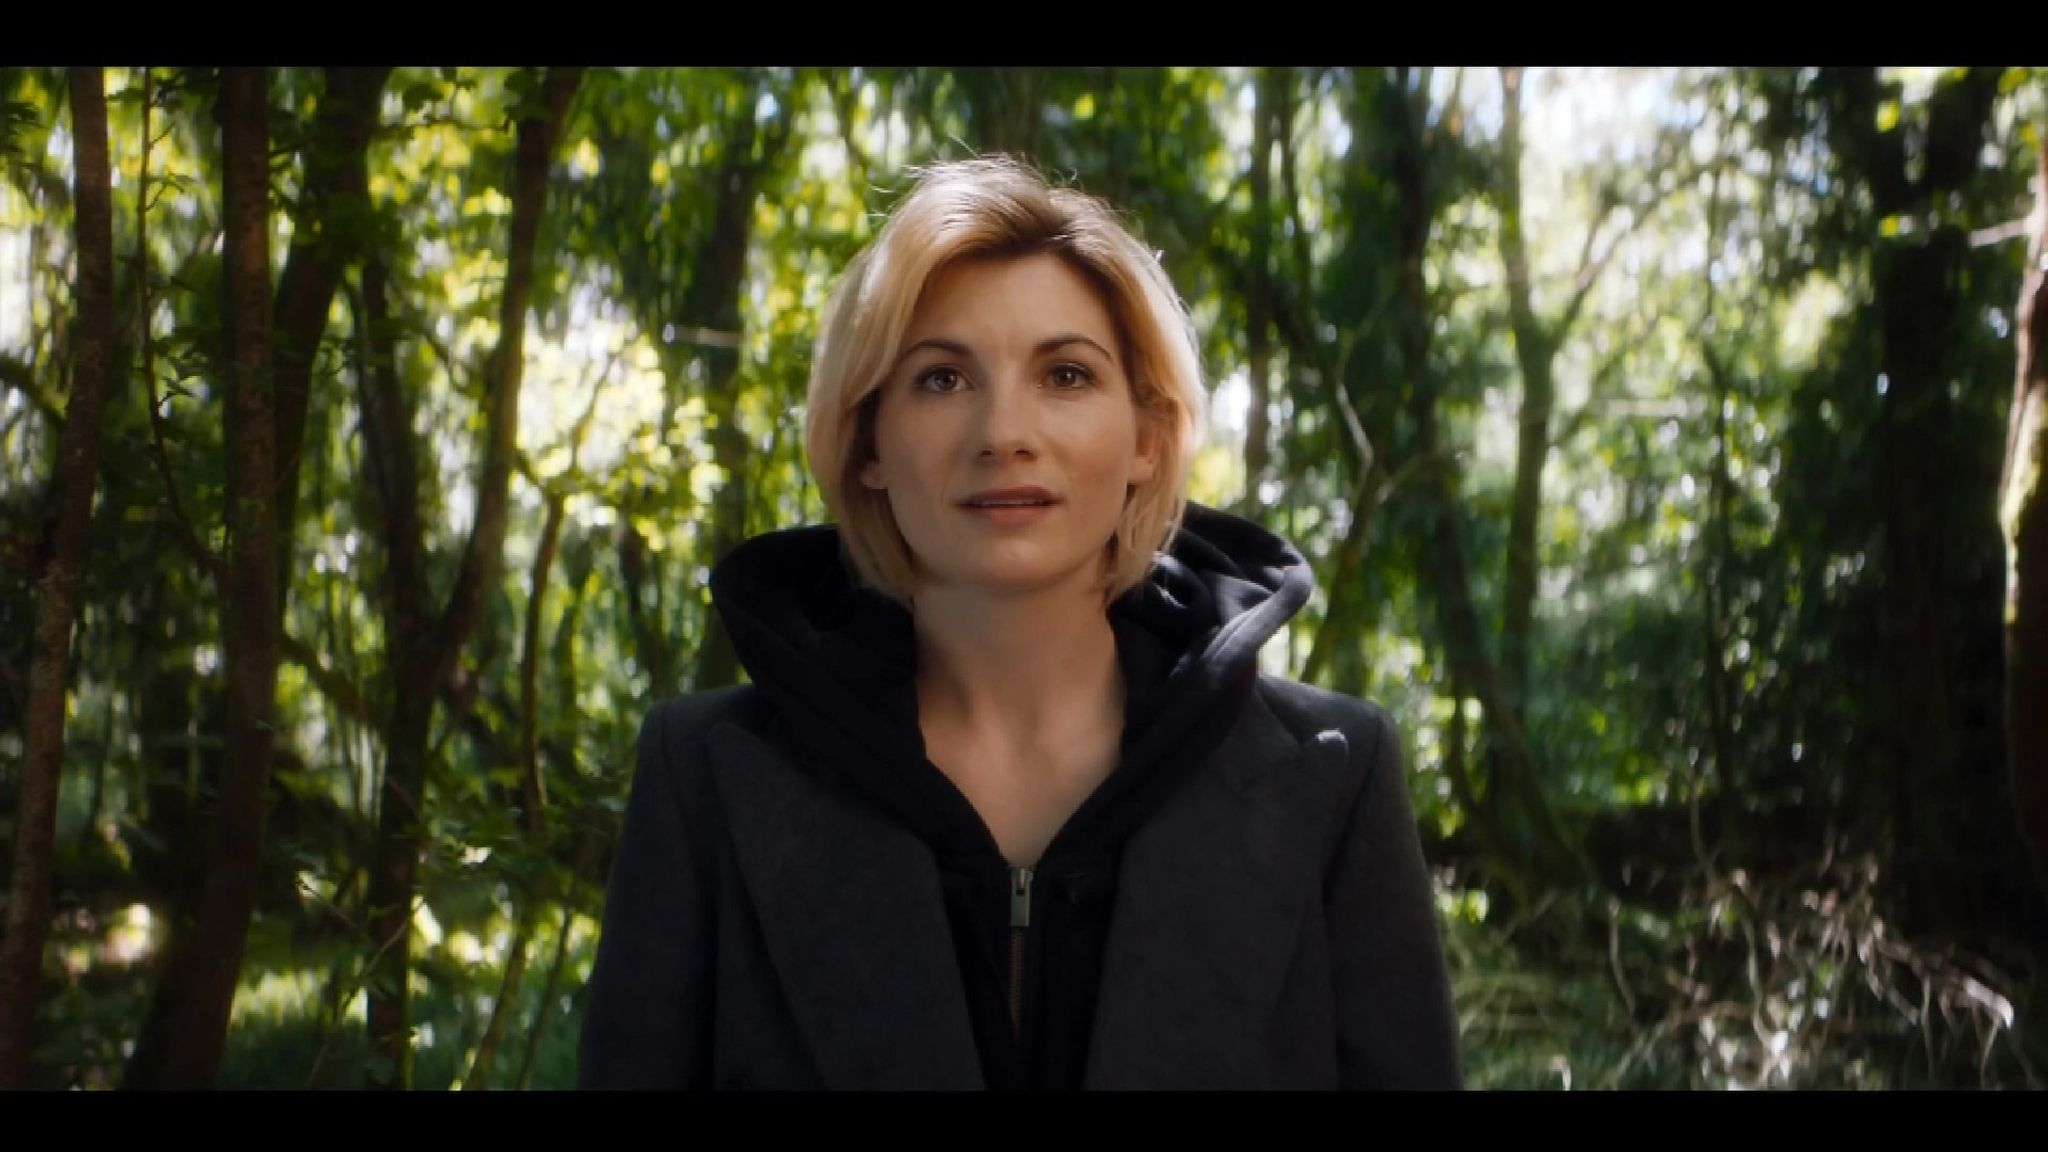 13th Doctor Who To Be Played By Jodie Whittaker News Uk Video